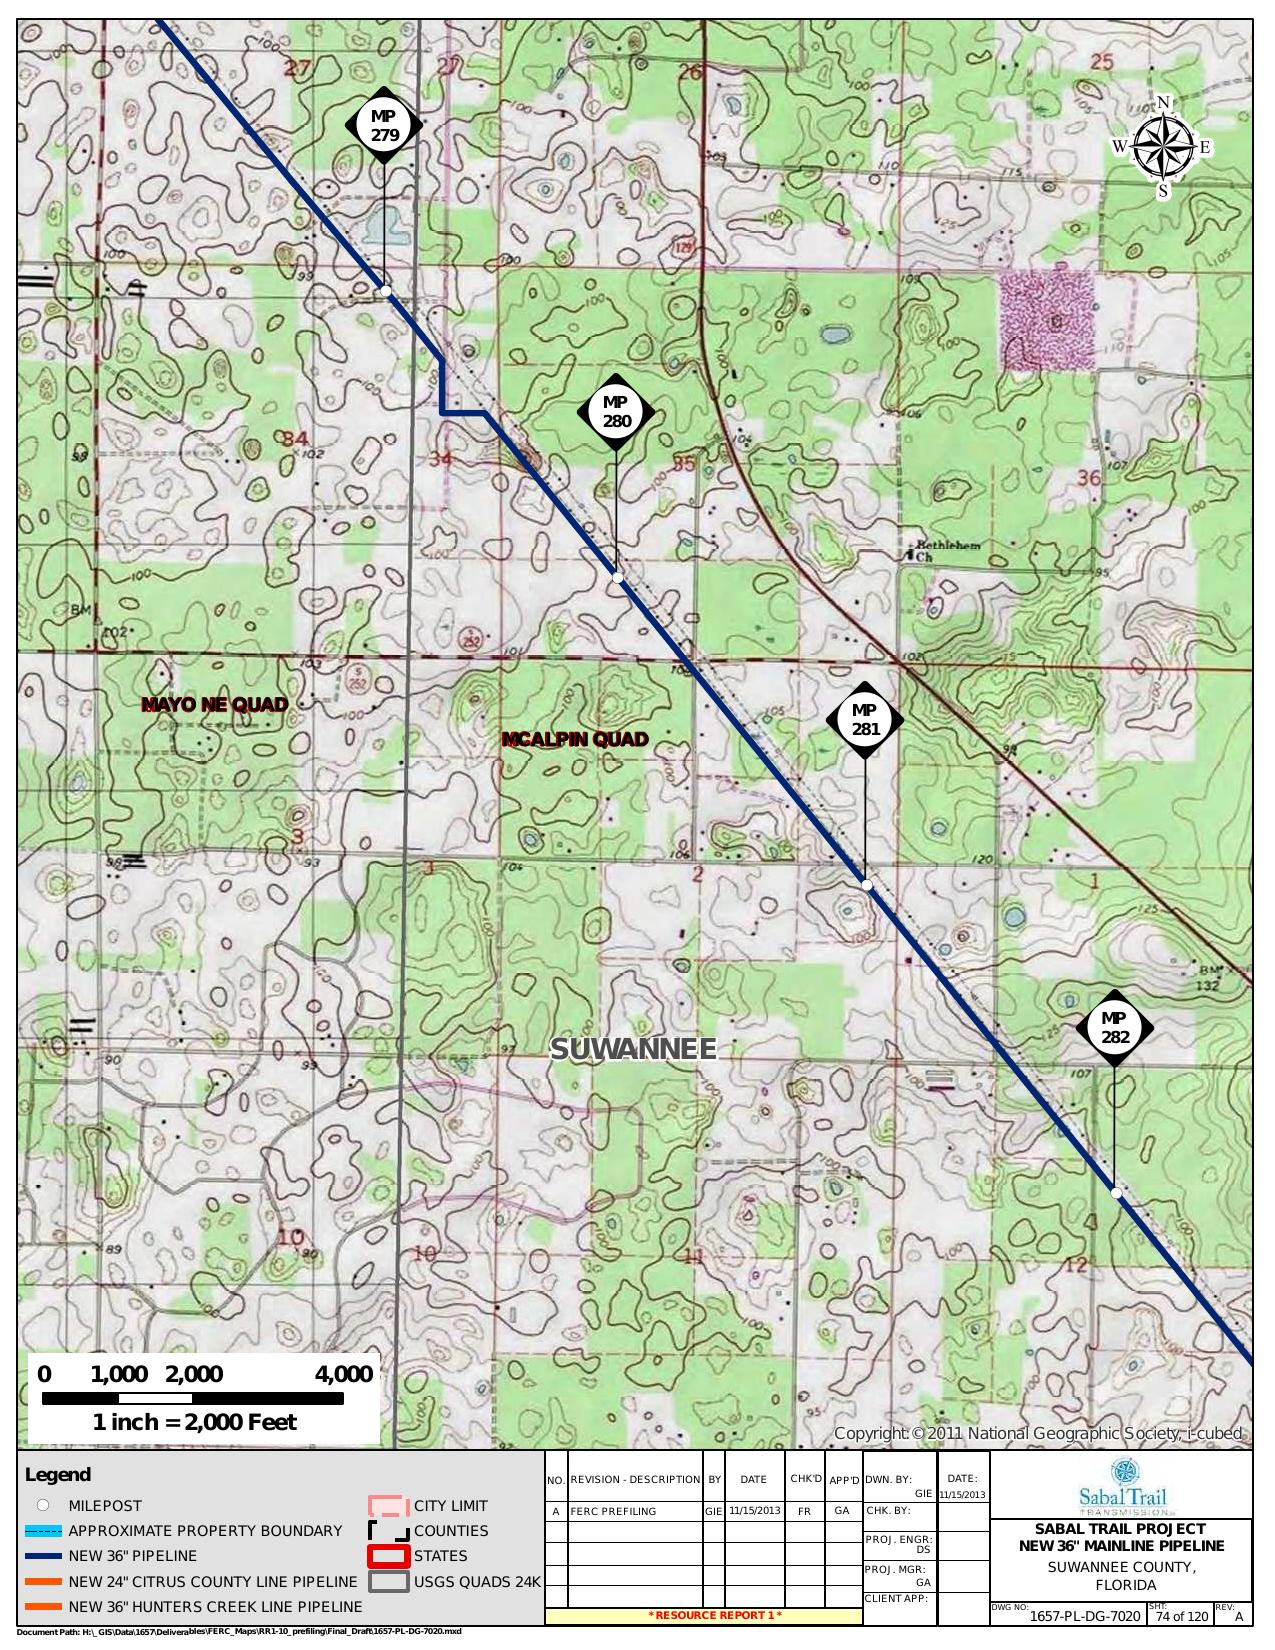 McAlpin Quad, Suwannee County, Florida, in General Project Description, by SpectraBusters, for FERC Docket No. PF14-1-000, 15 November 2013, converted by SpectraBusters